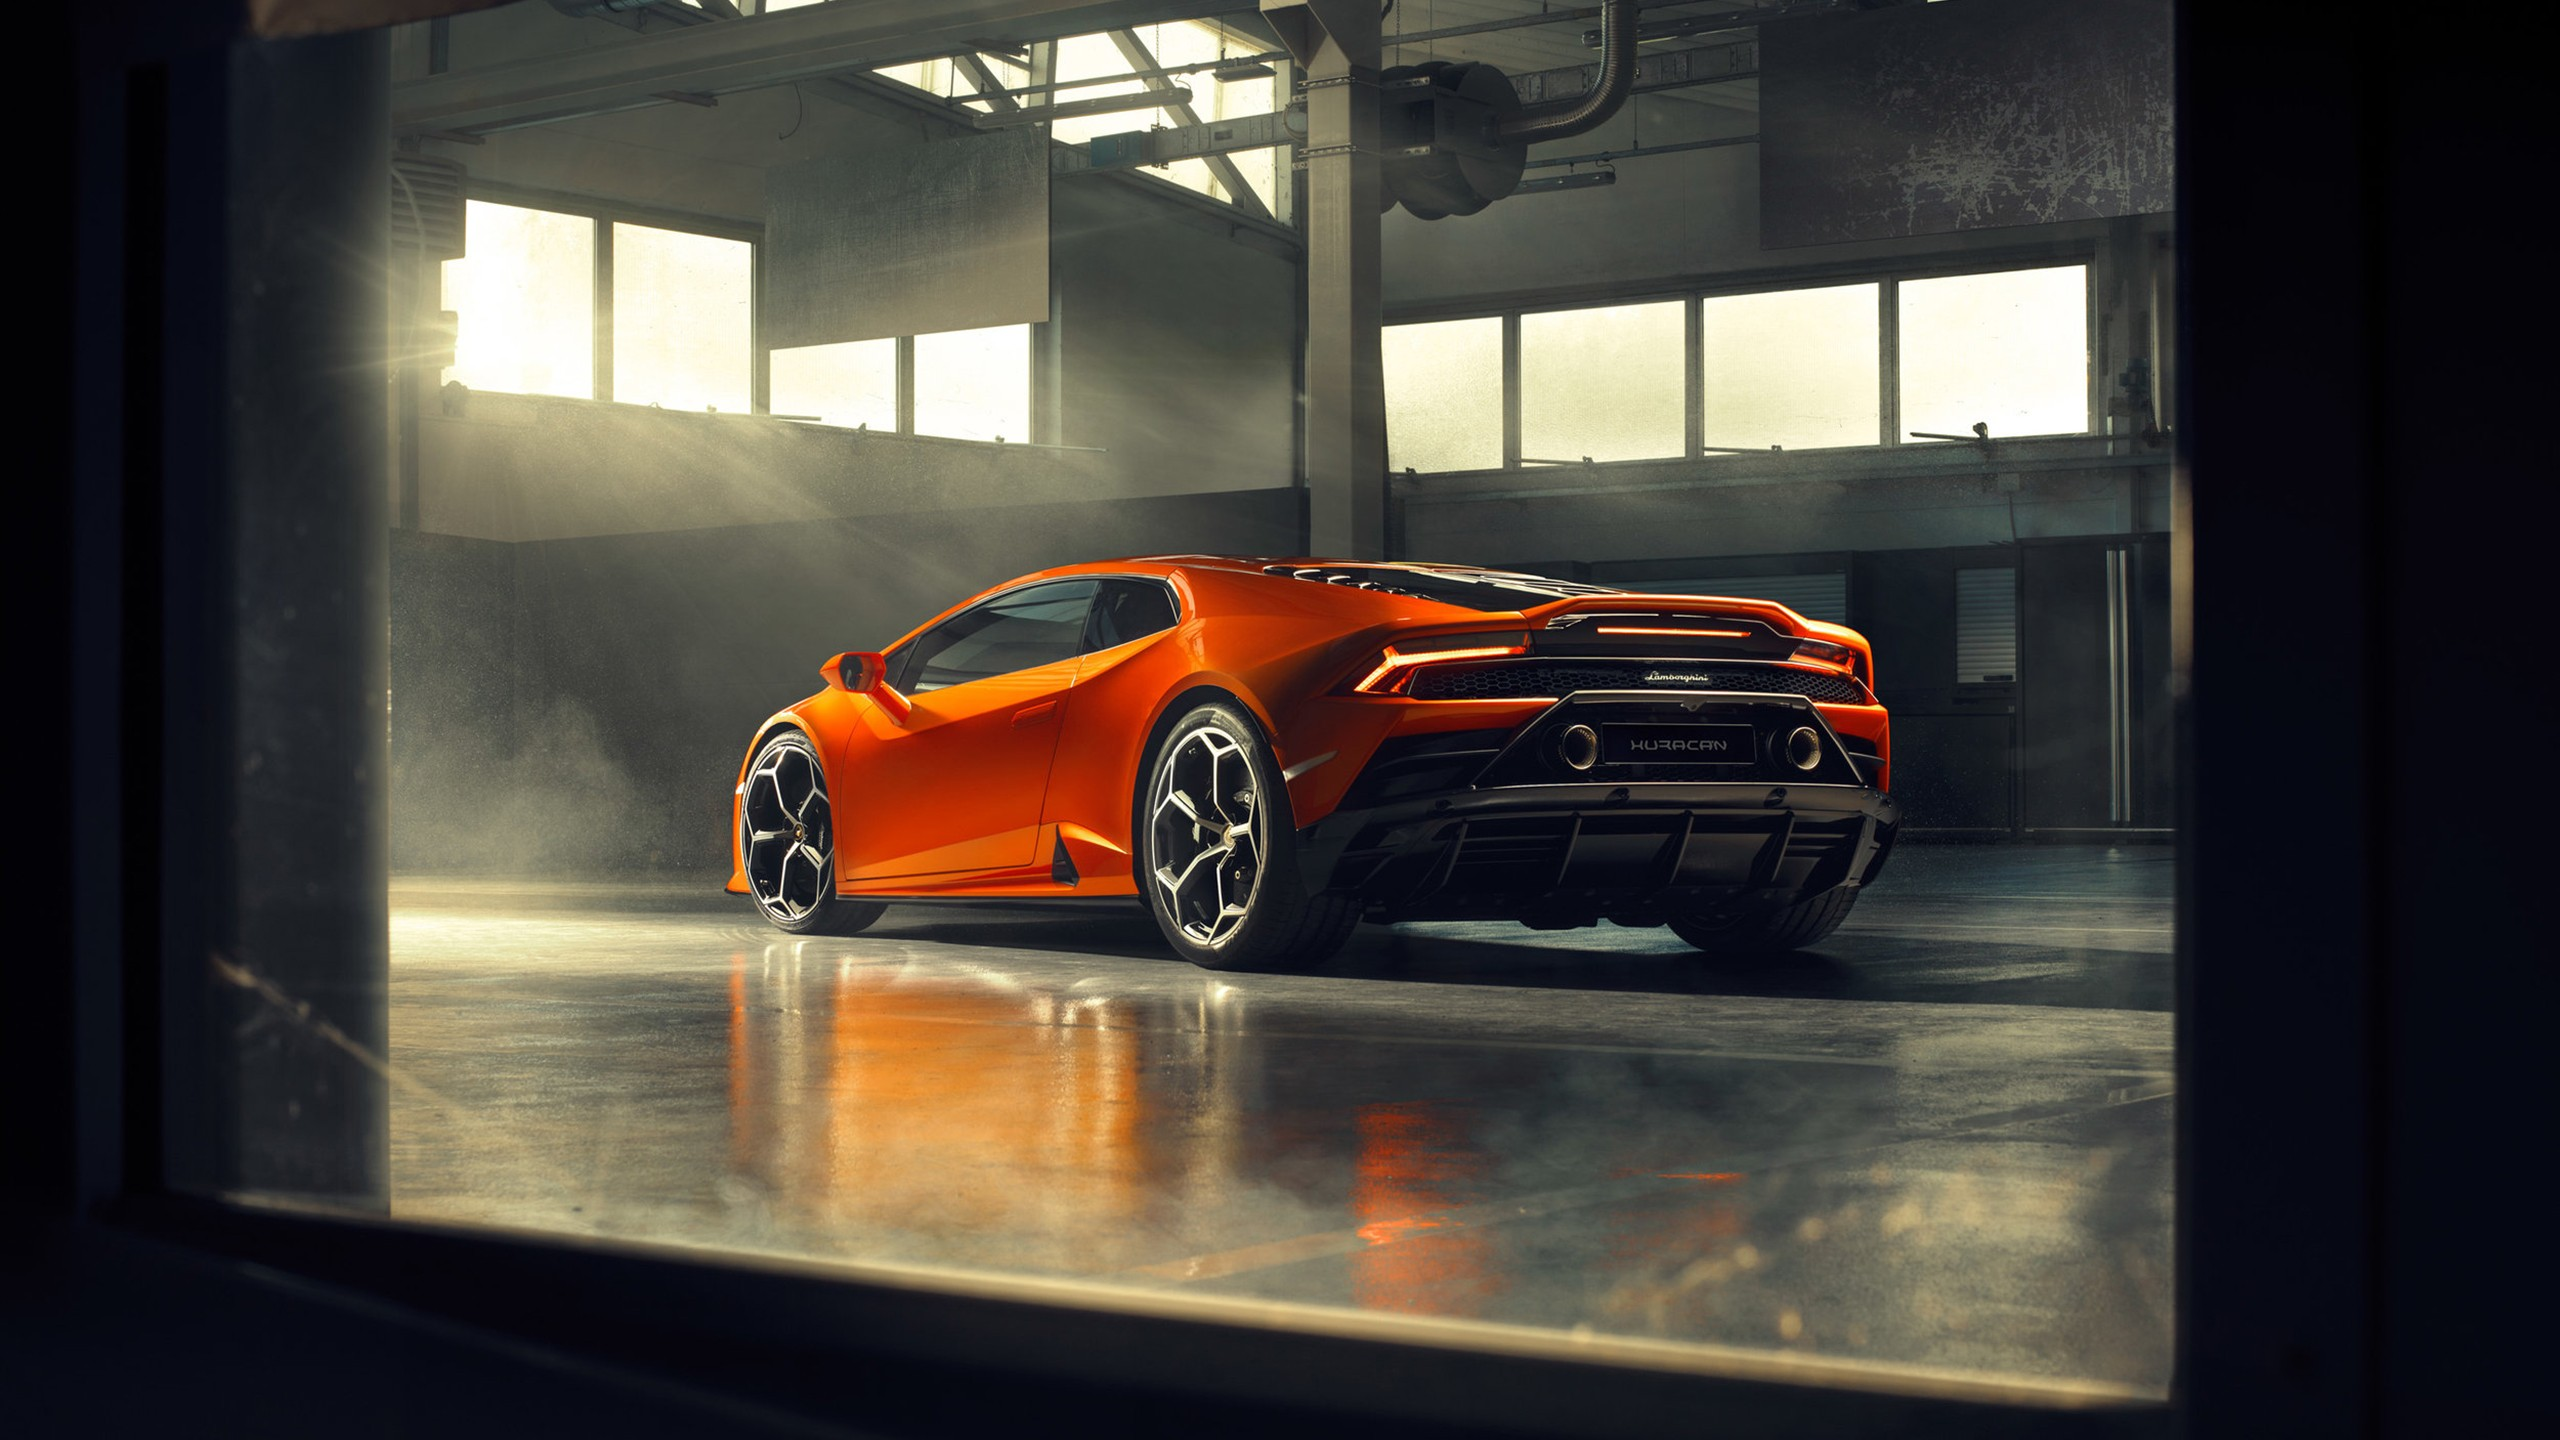 Lamborghini Huracan EVO 2019 4K 2 Wallpaper | HD Car ...